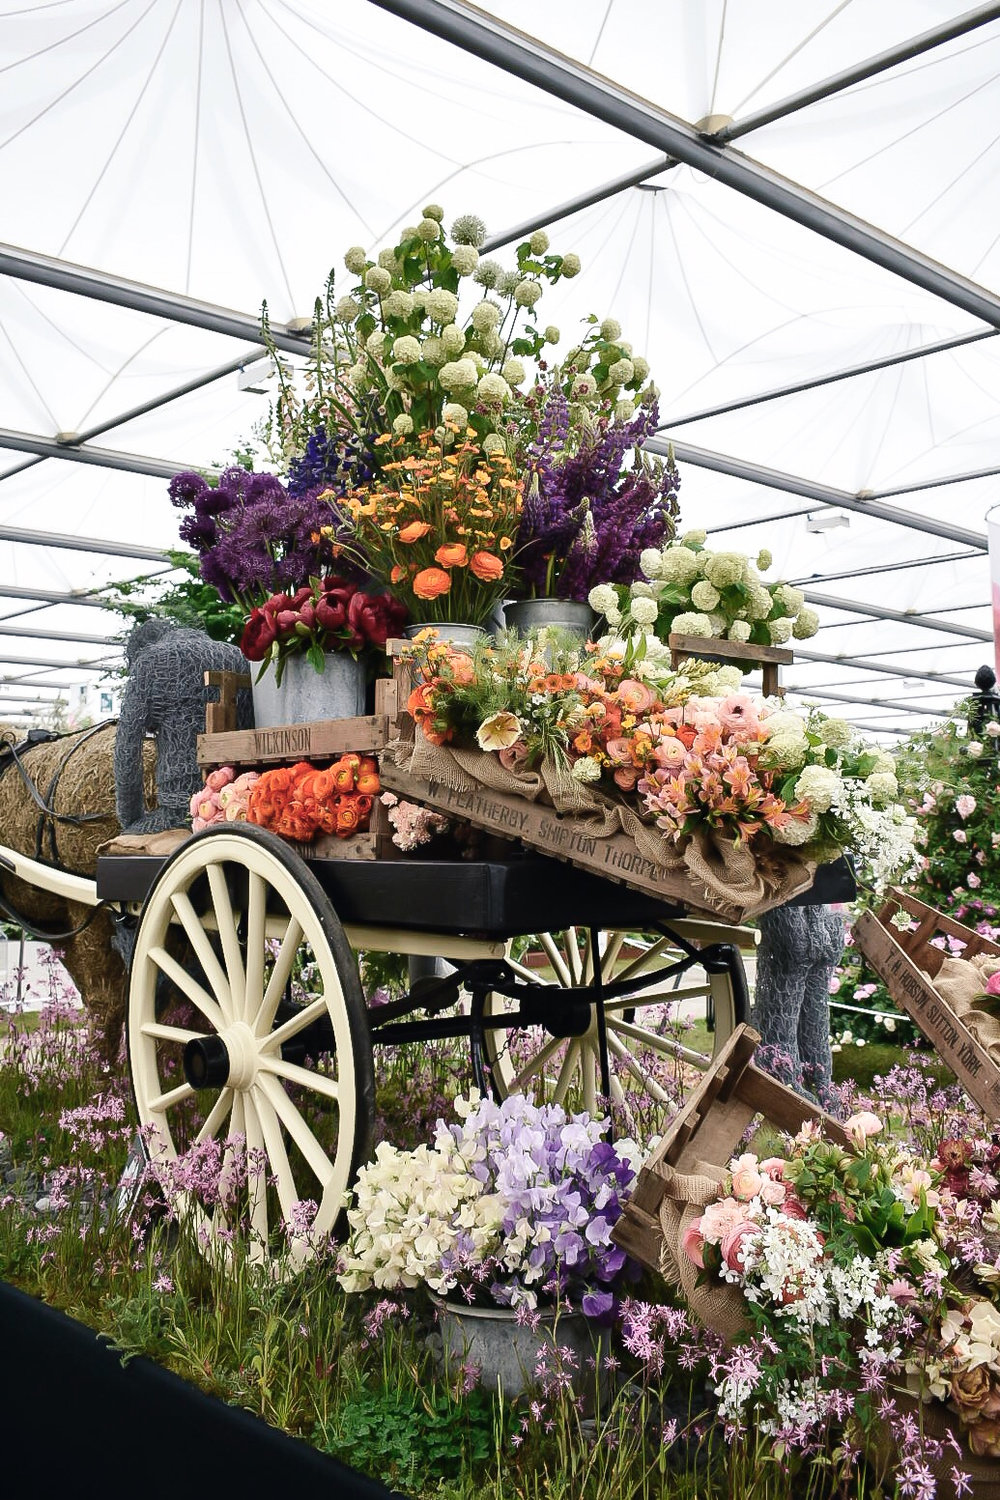 Under The Floral Spell At The Rhs Chelsea Flower Show Skye Oneill